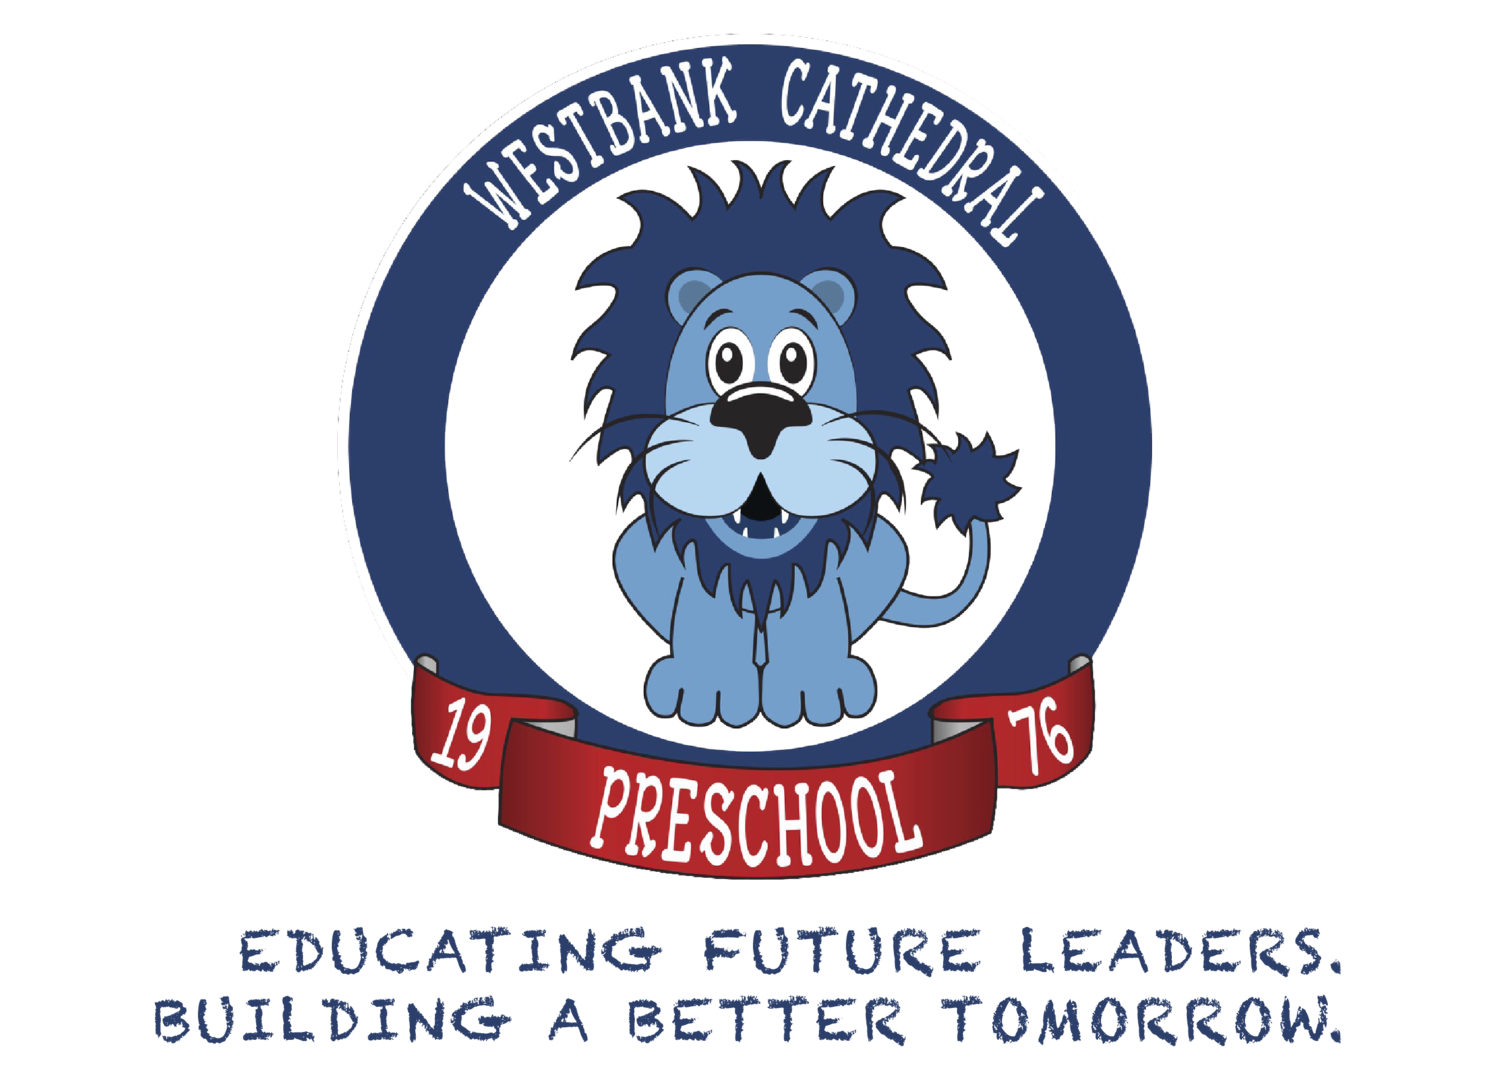 Westbank Cathedral PreSchool